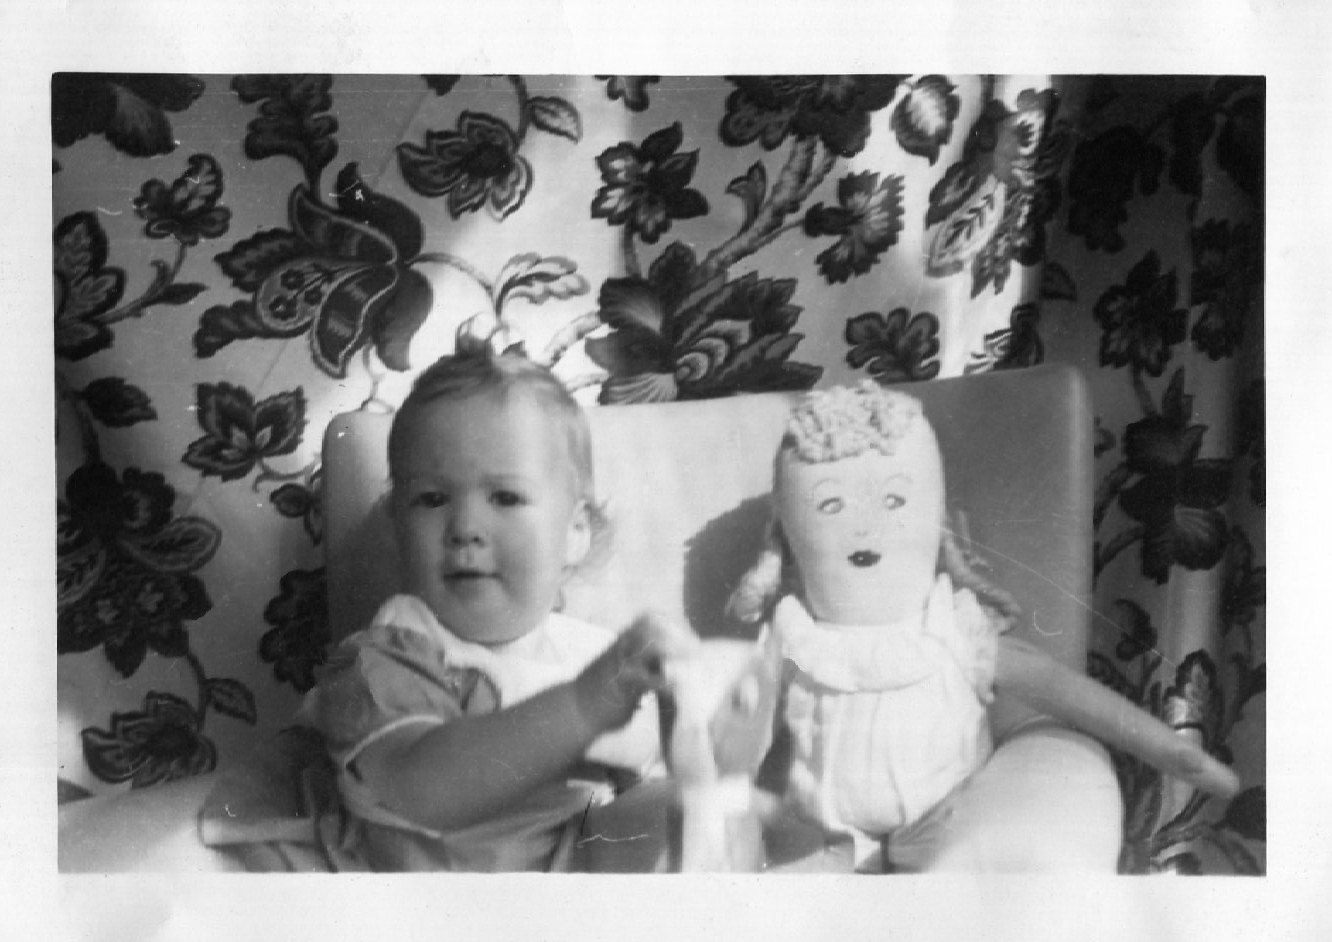 Vintage Photo..Her First Doll 1950's, Original Photo, Old Photo Snapshot, Vernacular Photograhy, American Social History Photo by iloveyoumorephotos on Etsy